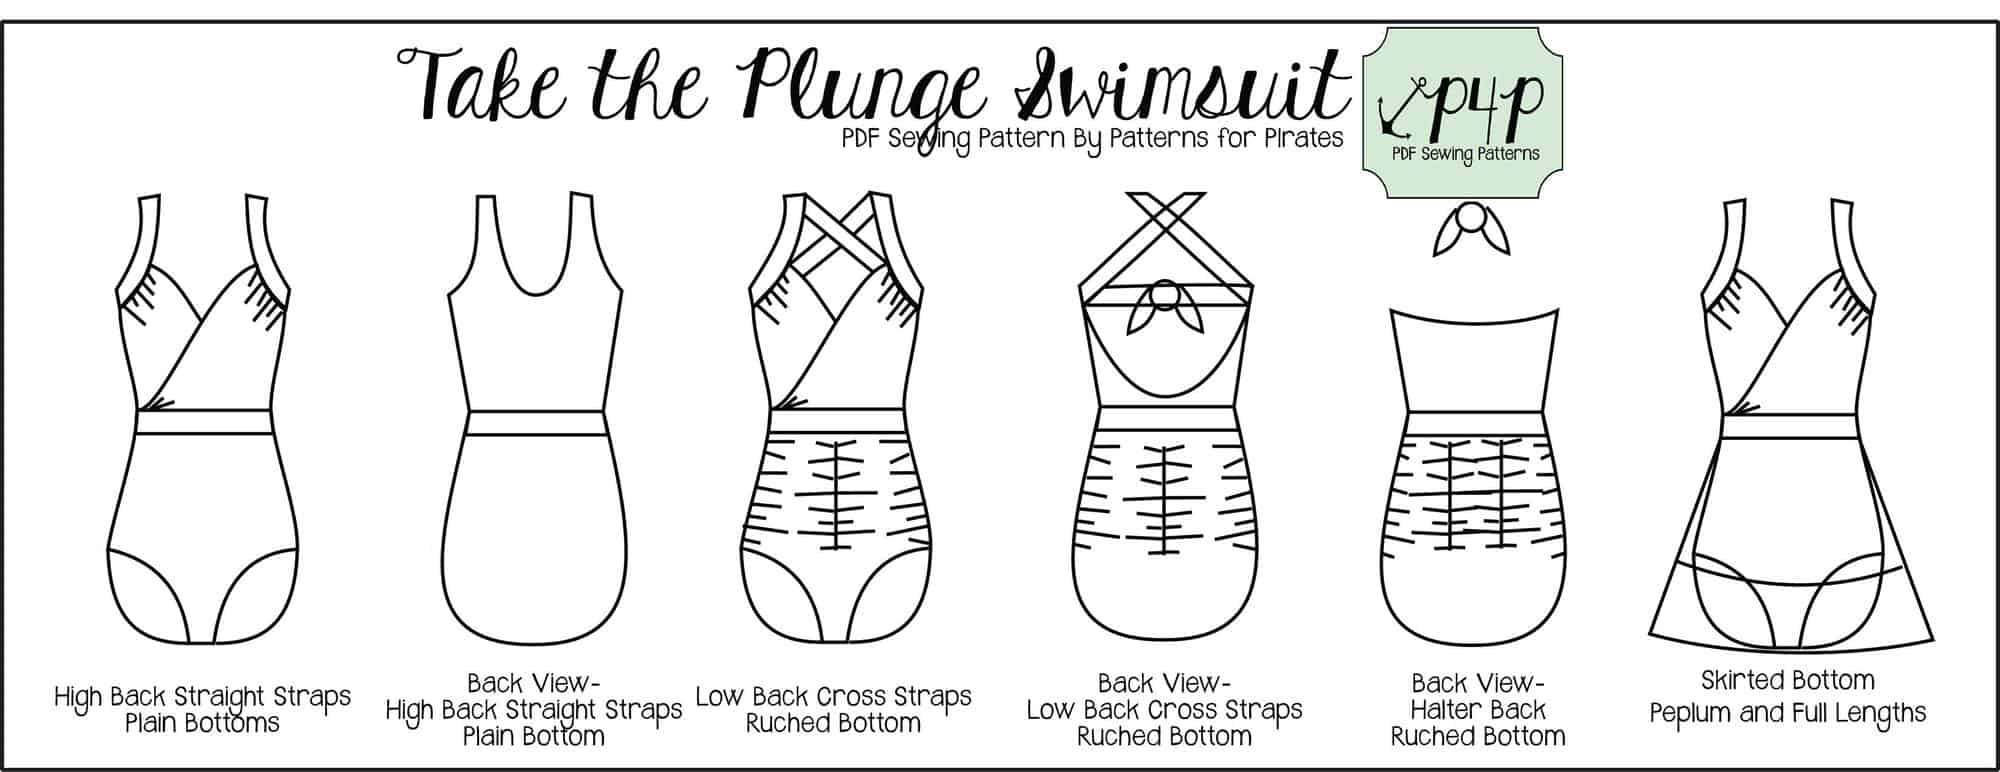 Take the Plunge Swimsuit :: New Pattern Release! - Patterns for Pirates